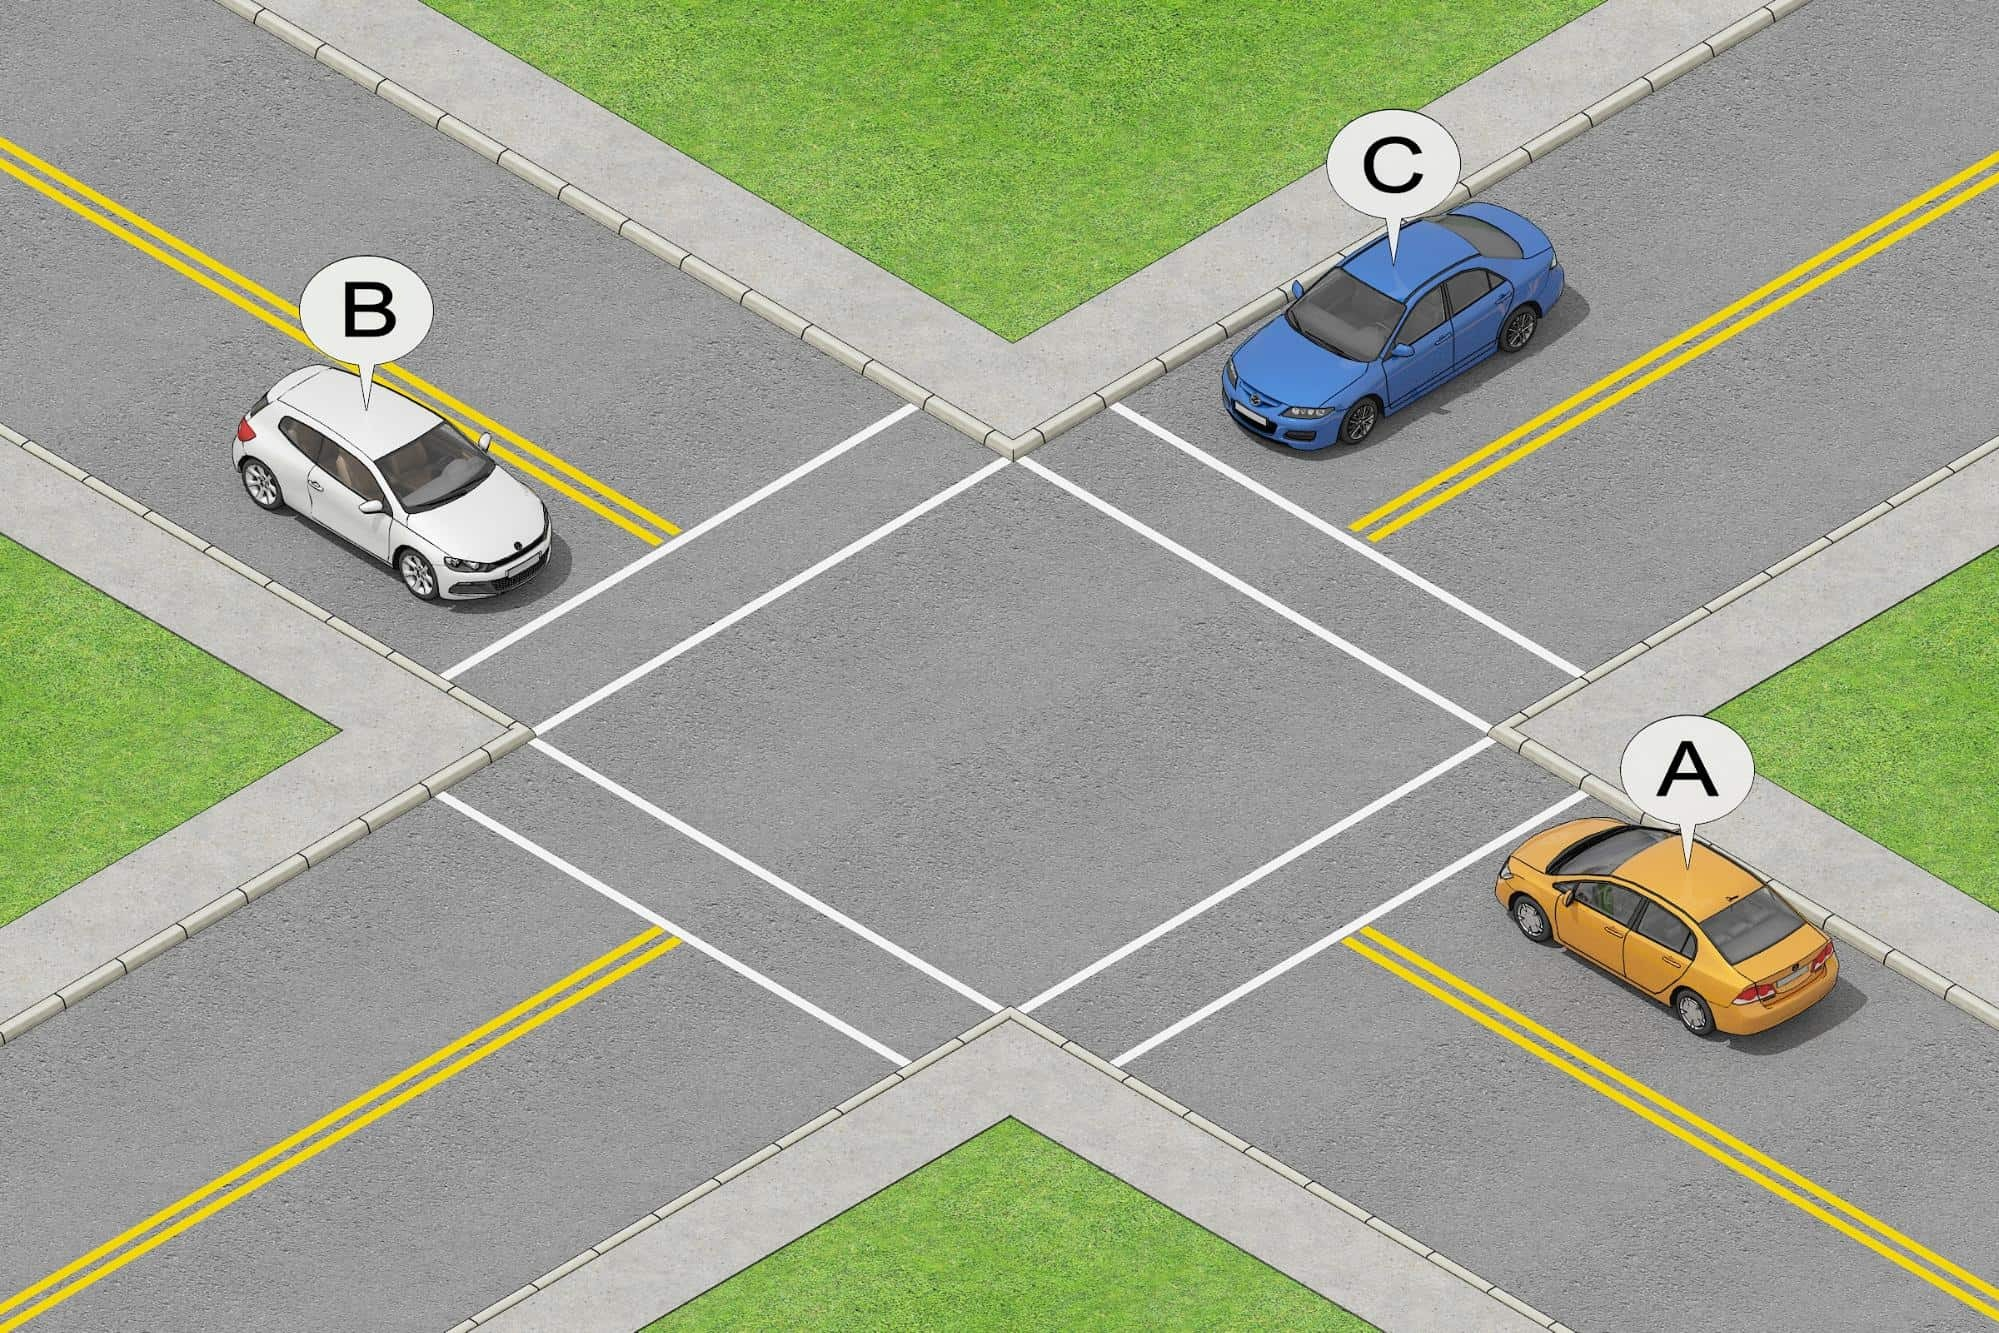 HOW SHOULD YOU PROCEED AT UNCONTROLLED INTERSECTIONS